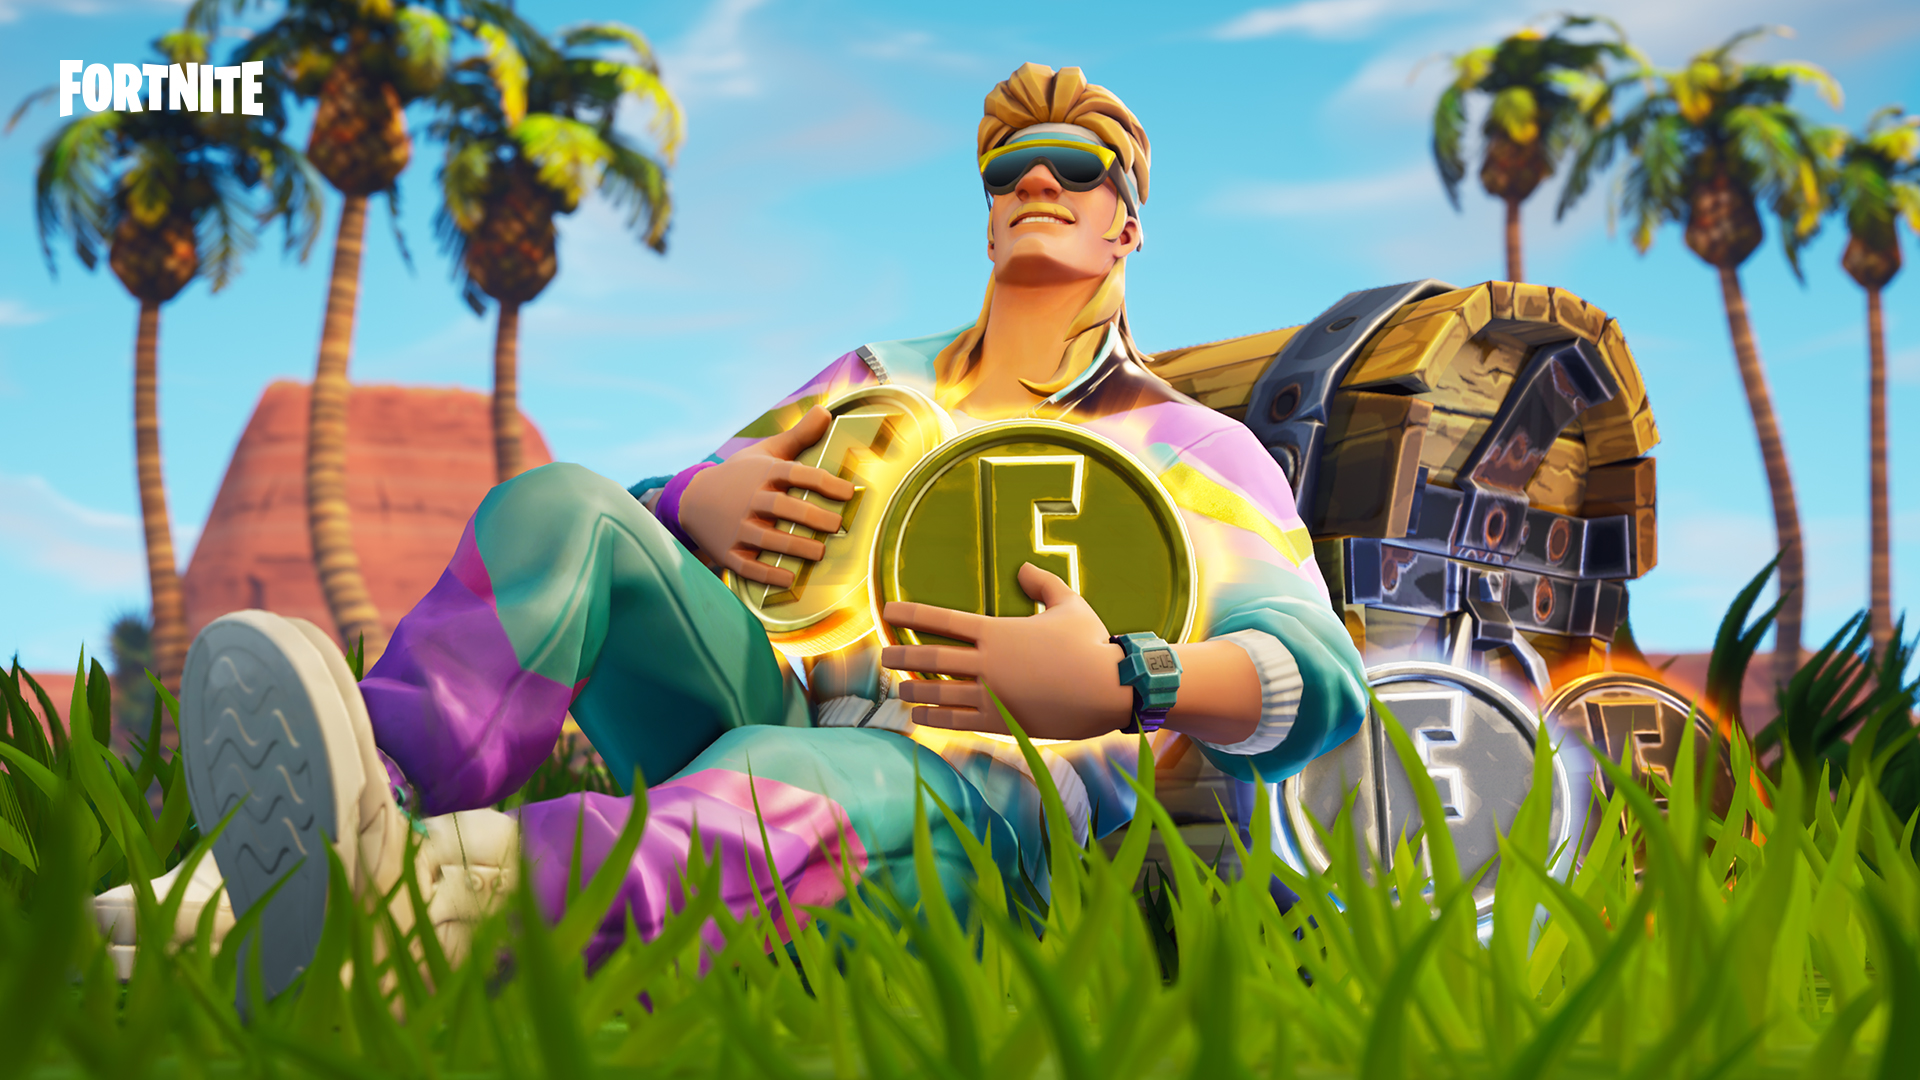 Arena erupts after former Fortnite cheater is eliminated in World Cup match